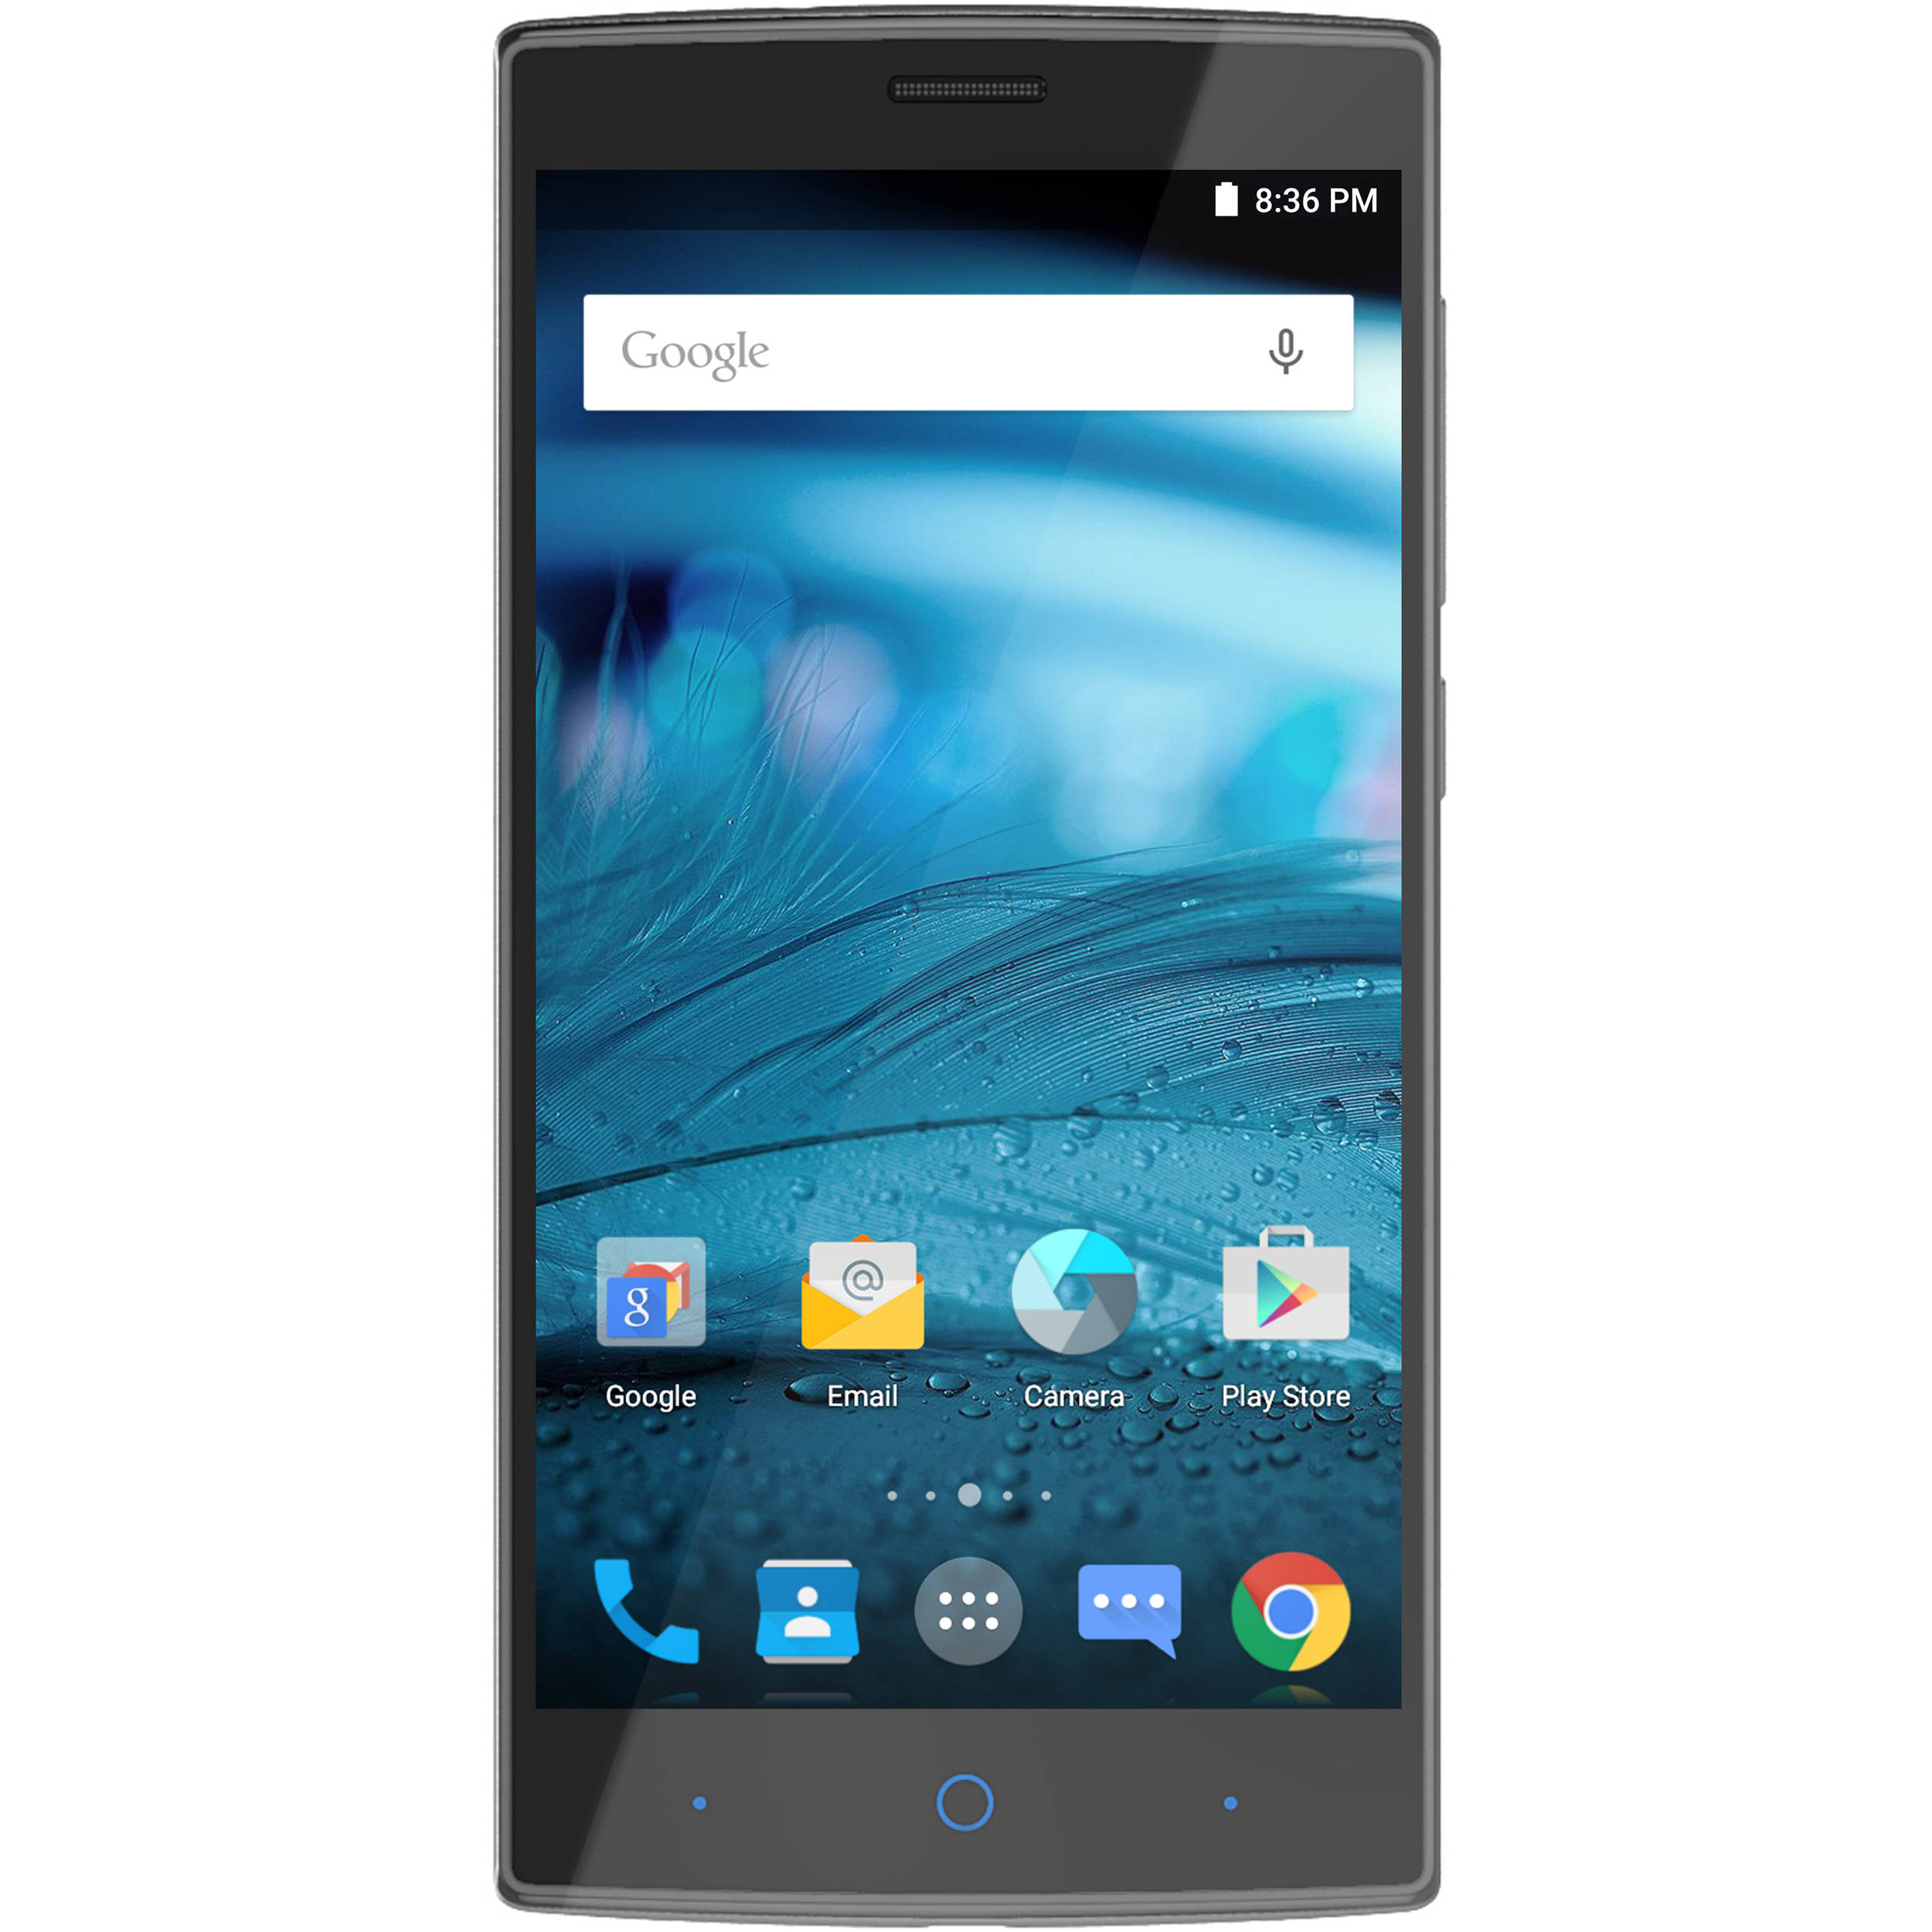 Wireless zte zmax 2 4g with 16gb memory prepaid cell phone you for all